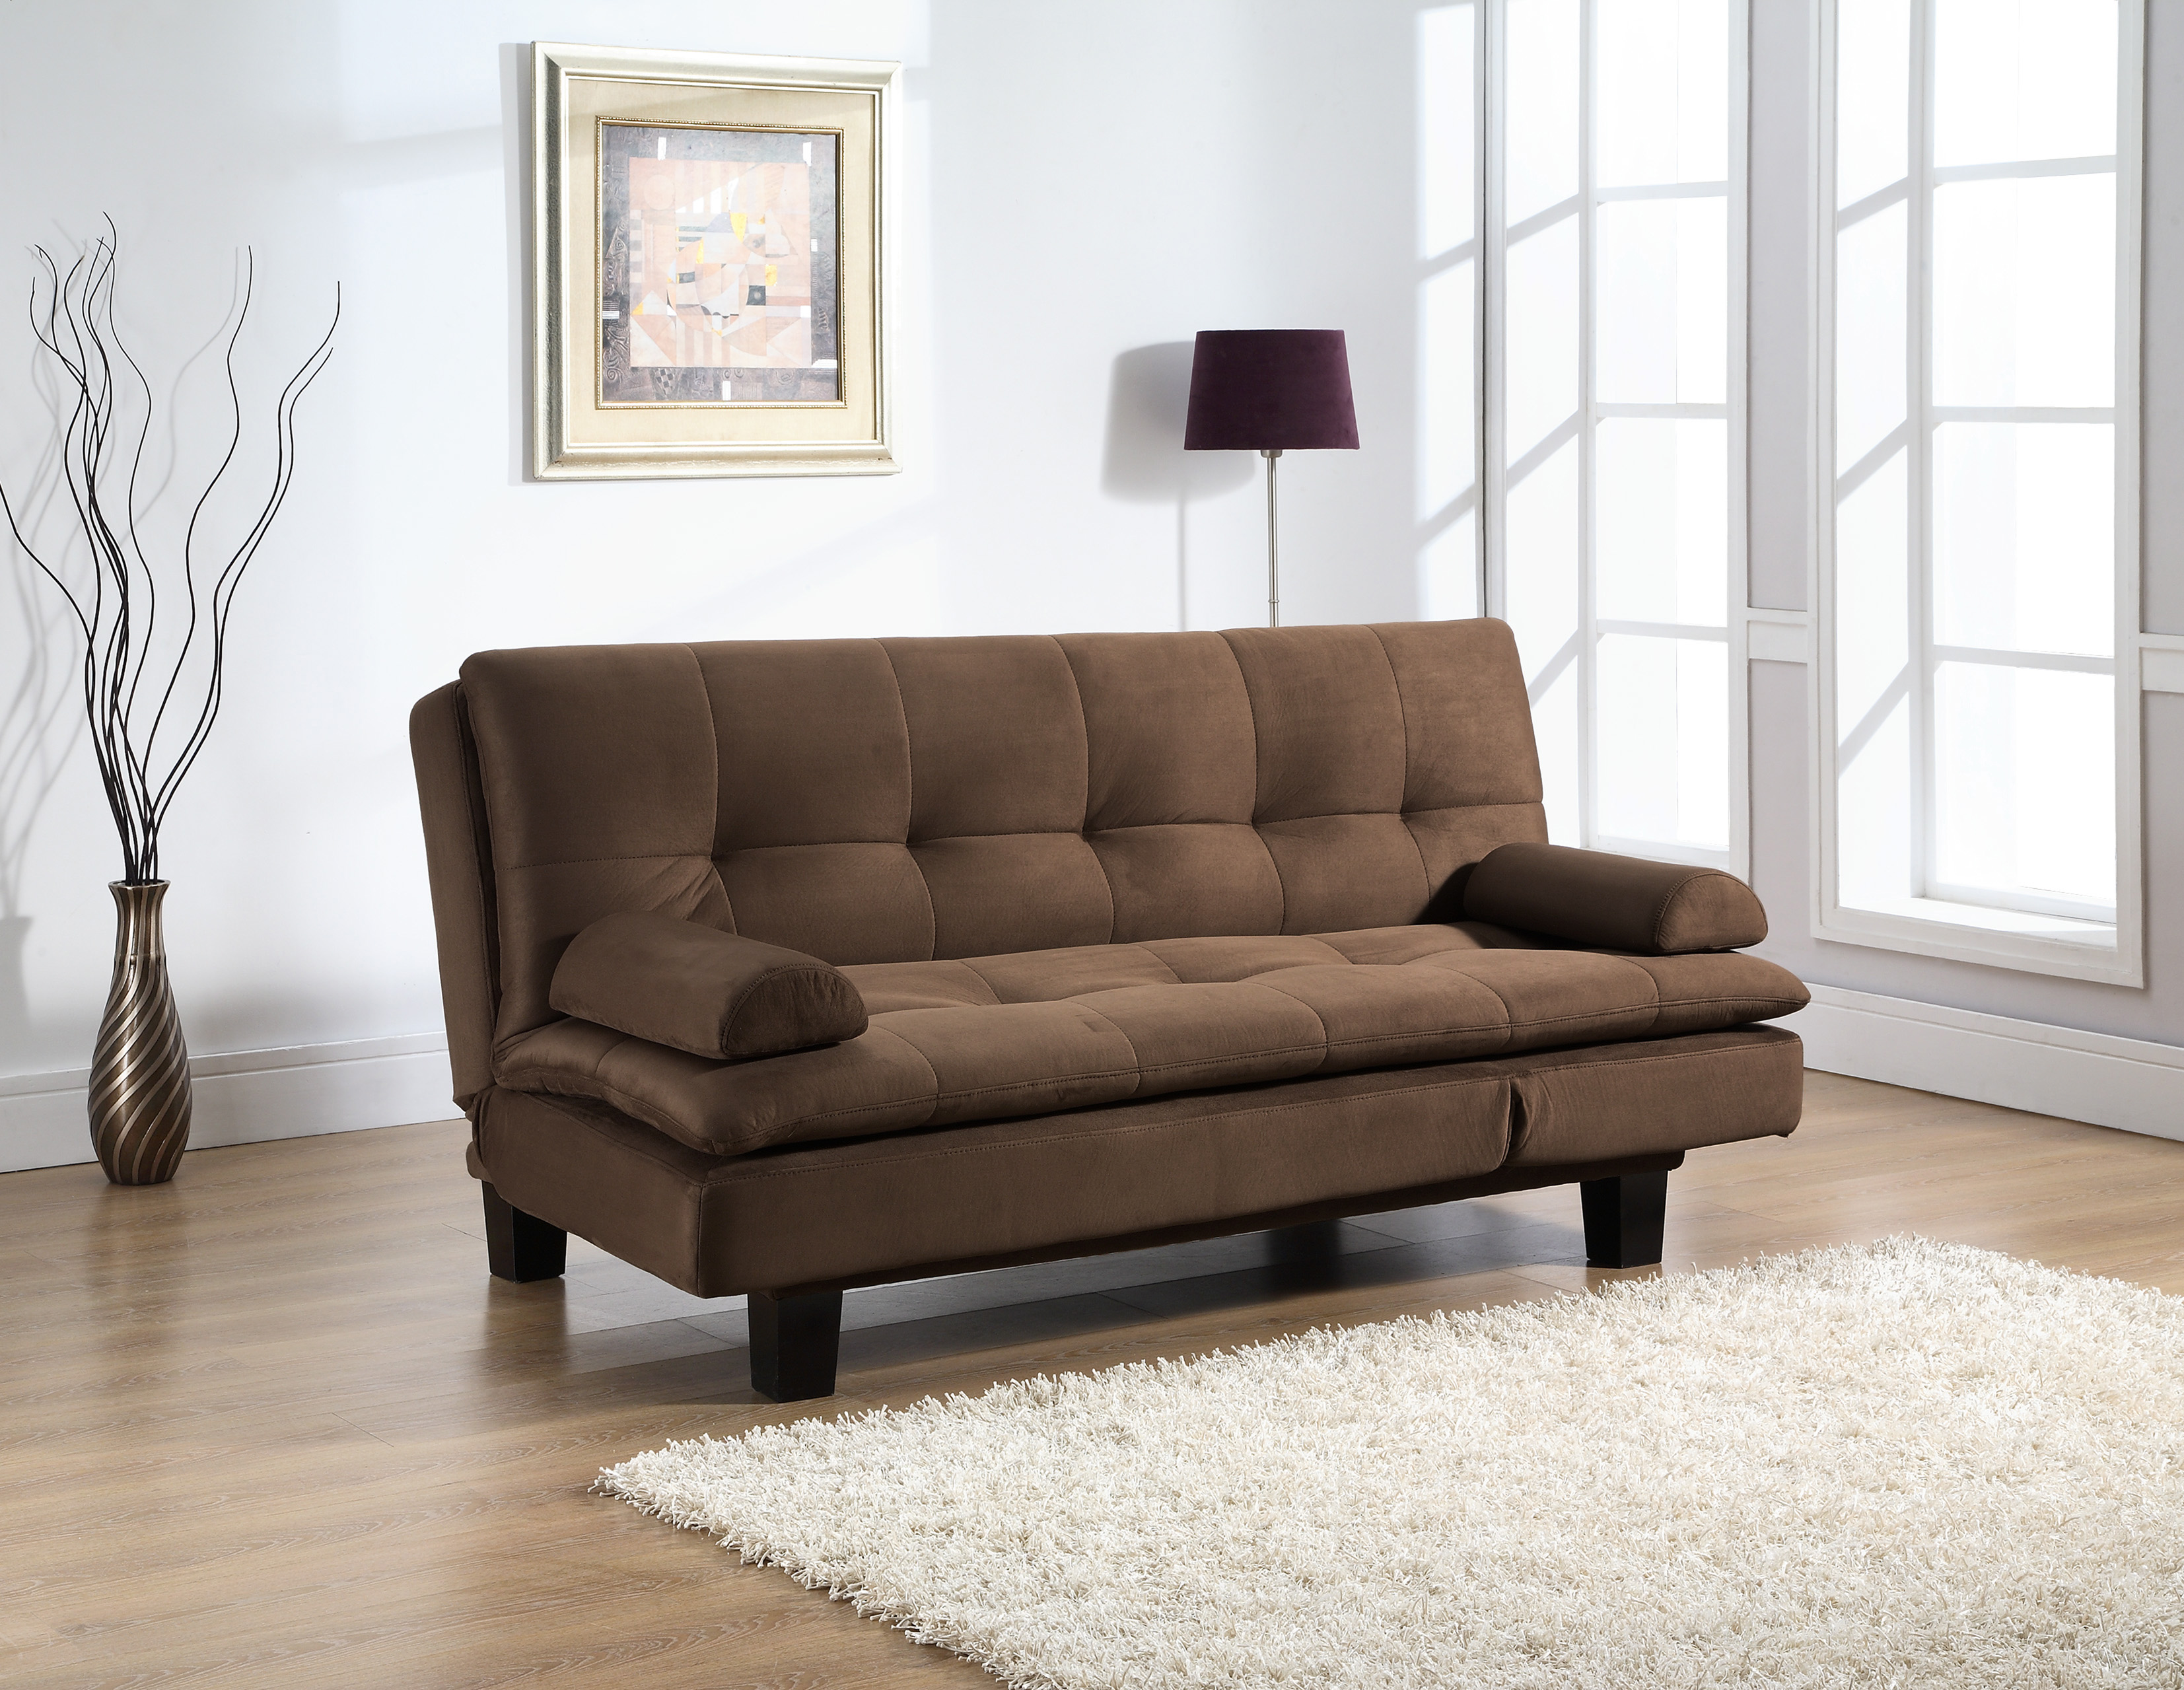 Sofas Adelaide Adelaide Convertible Sofa By Lifestyle Solutions Java